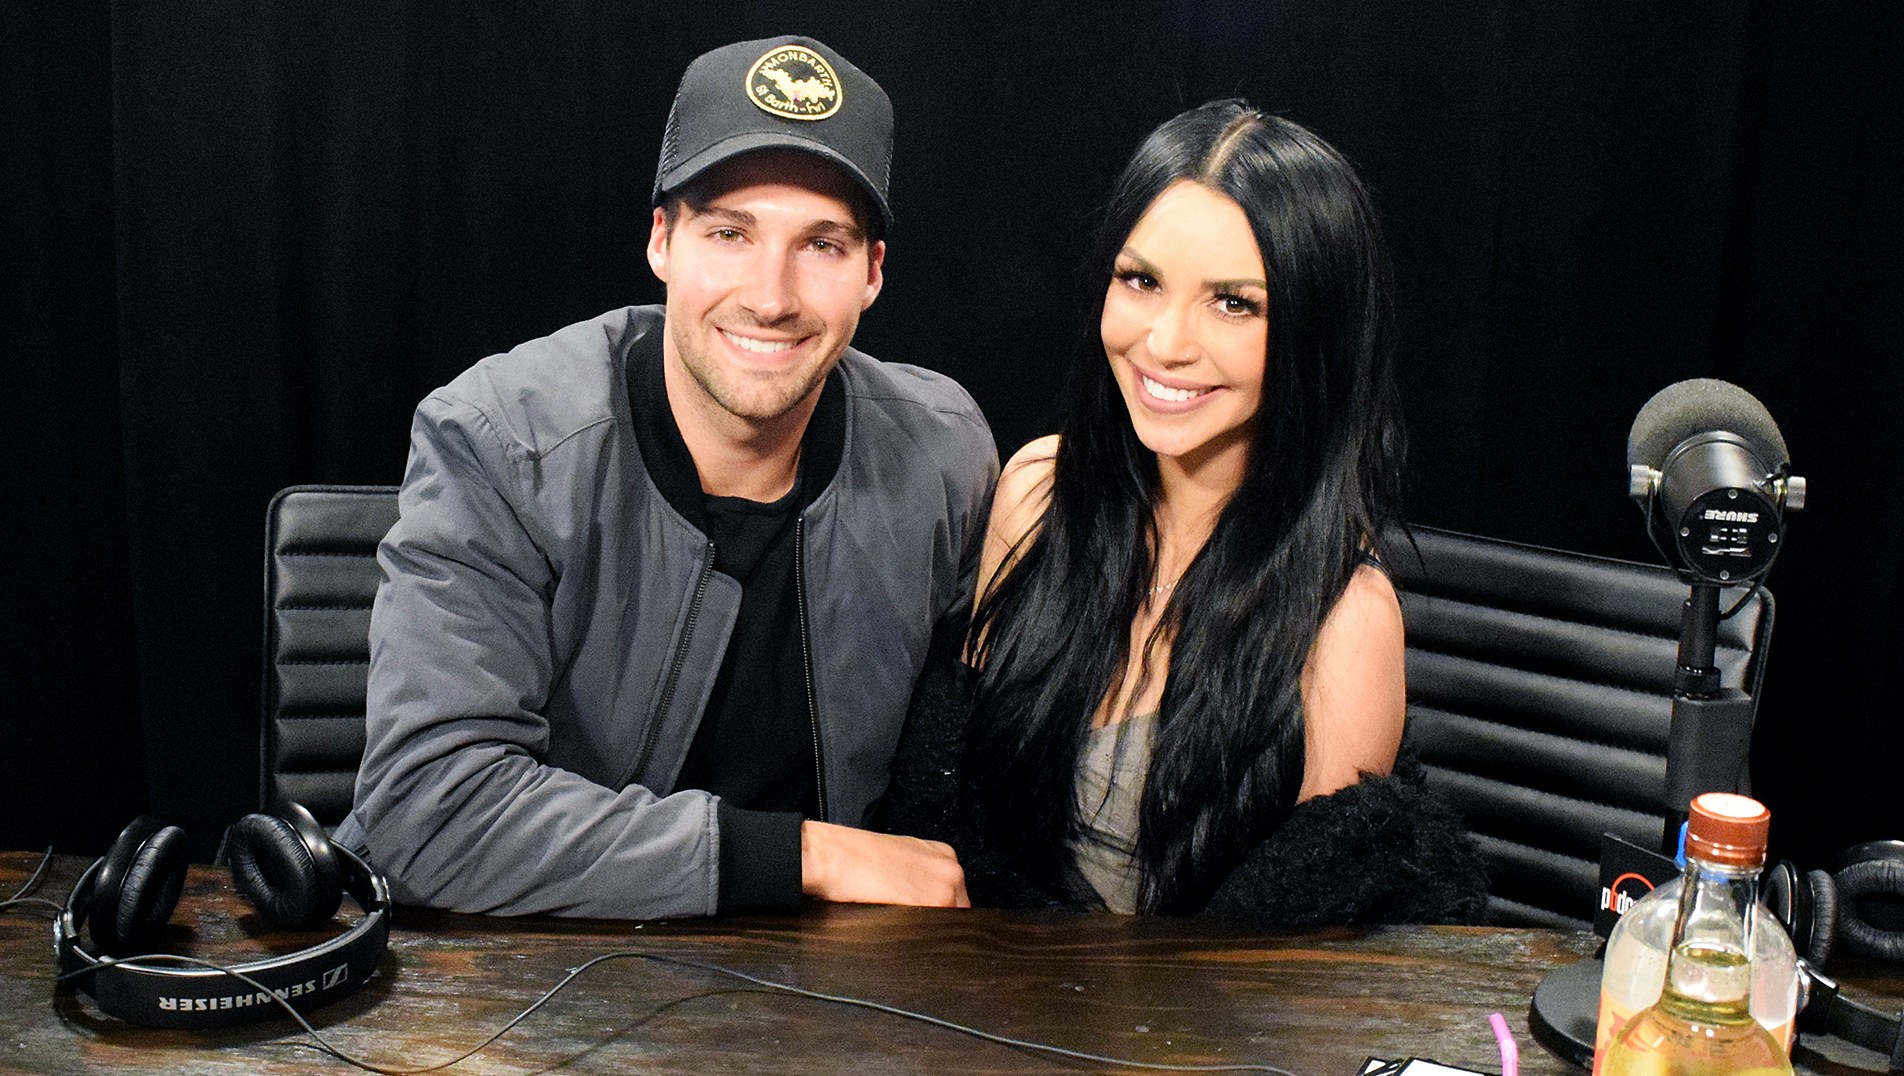 Scheana Shay and James Maslow Swap Stories About Brandi Glanville Feuds